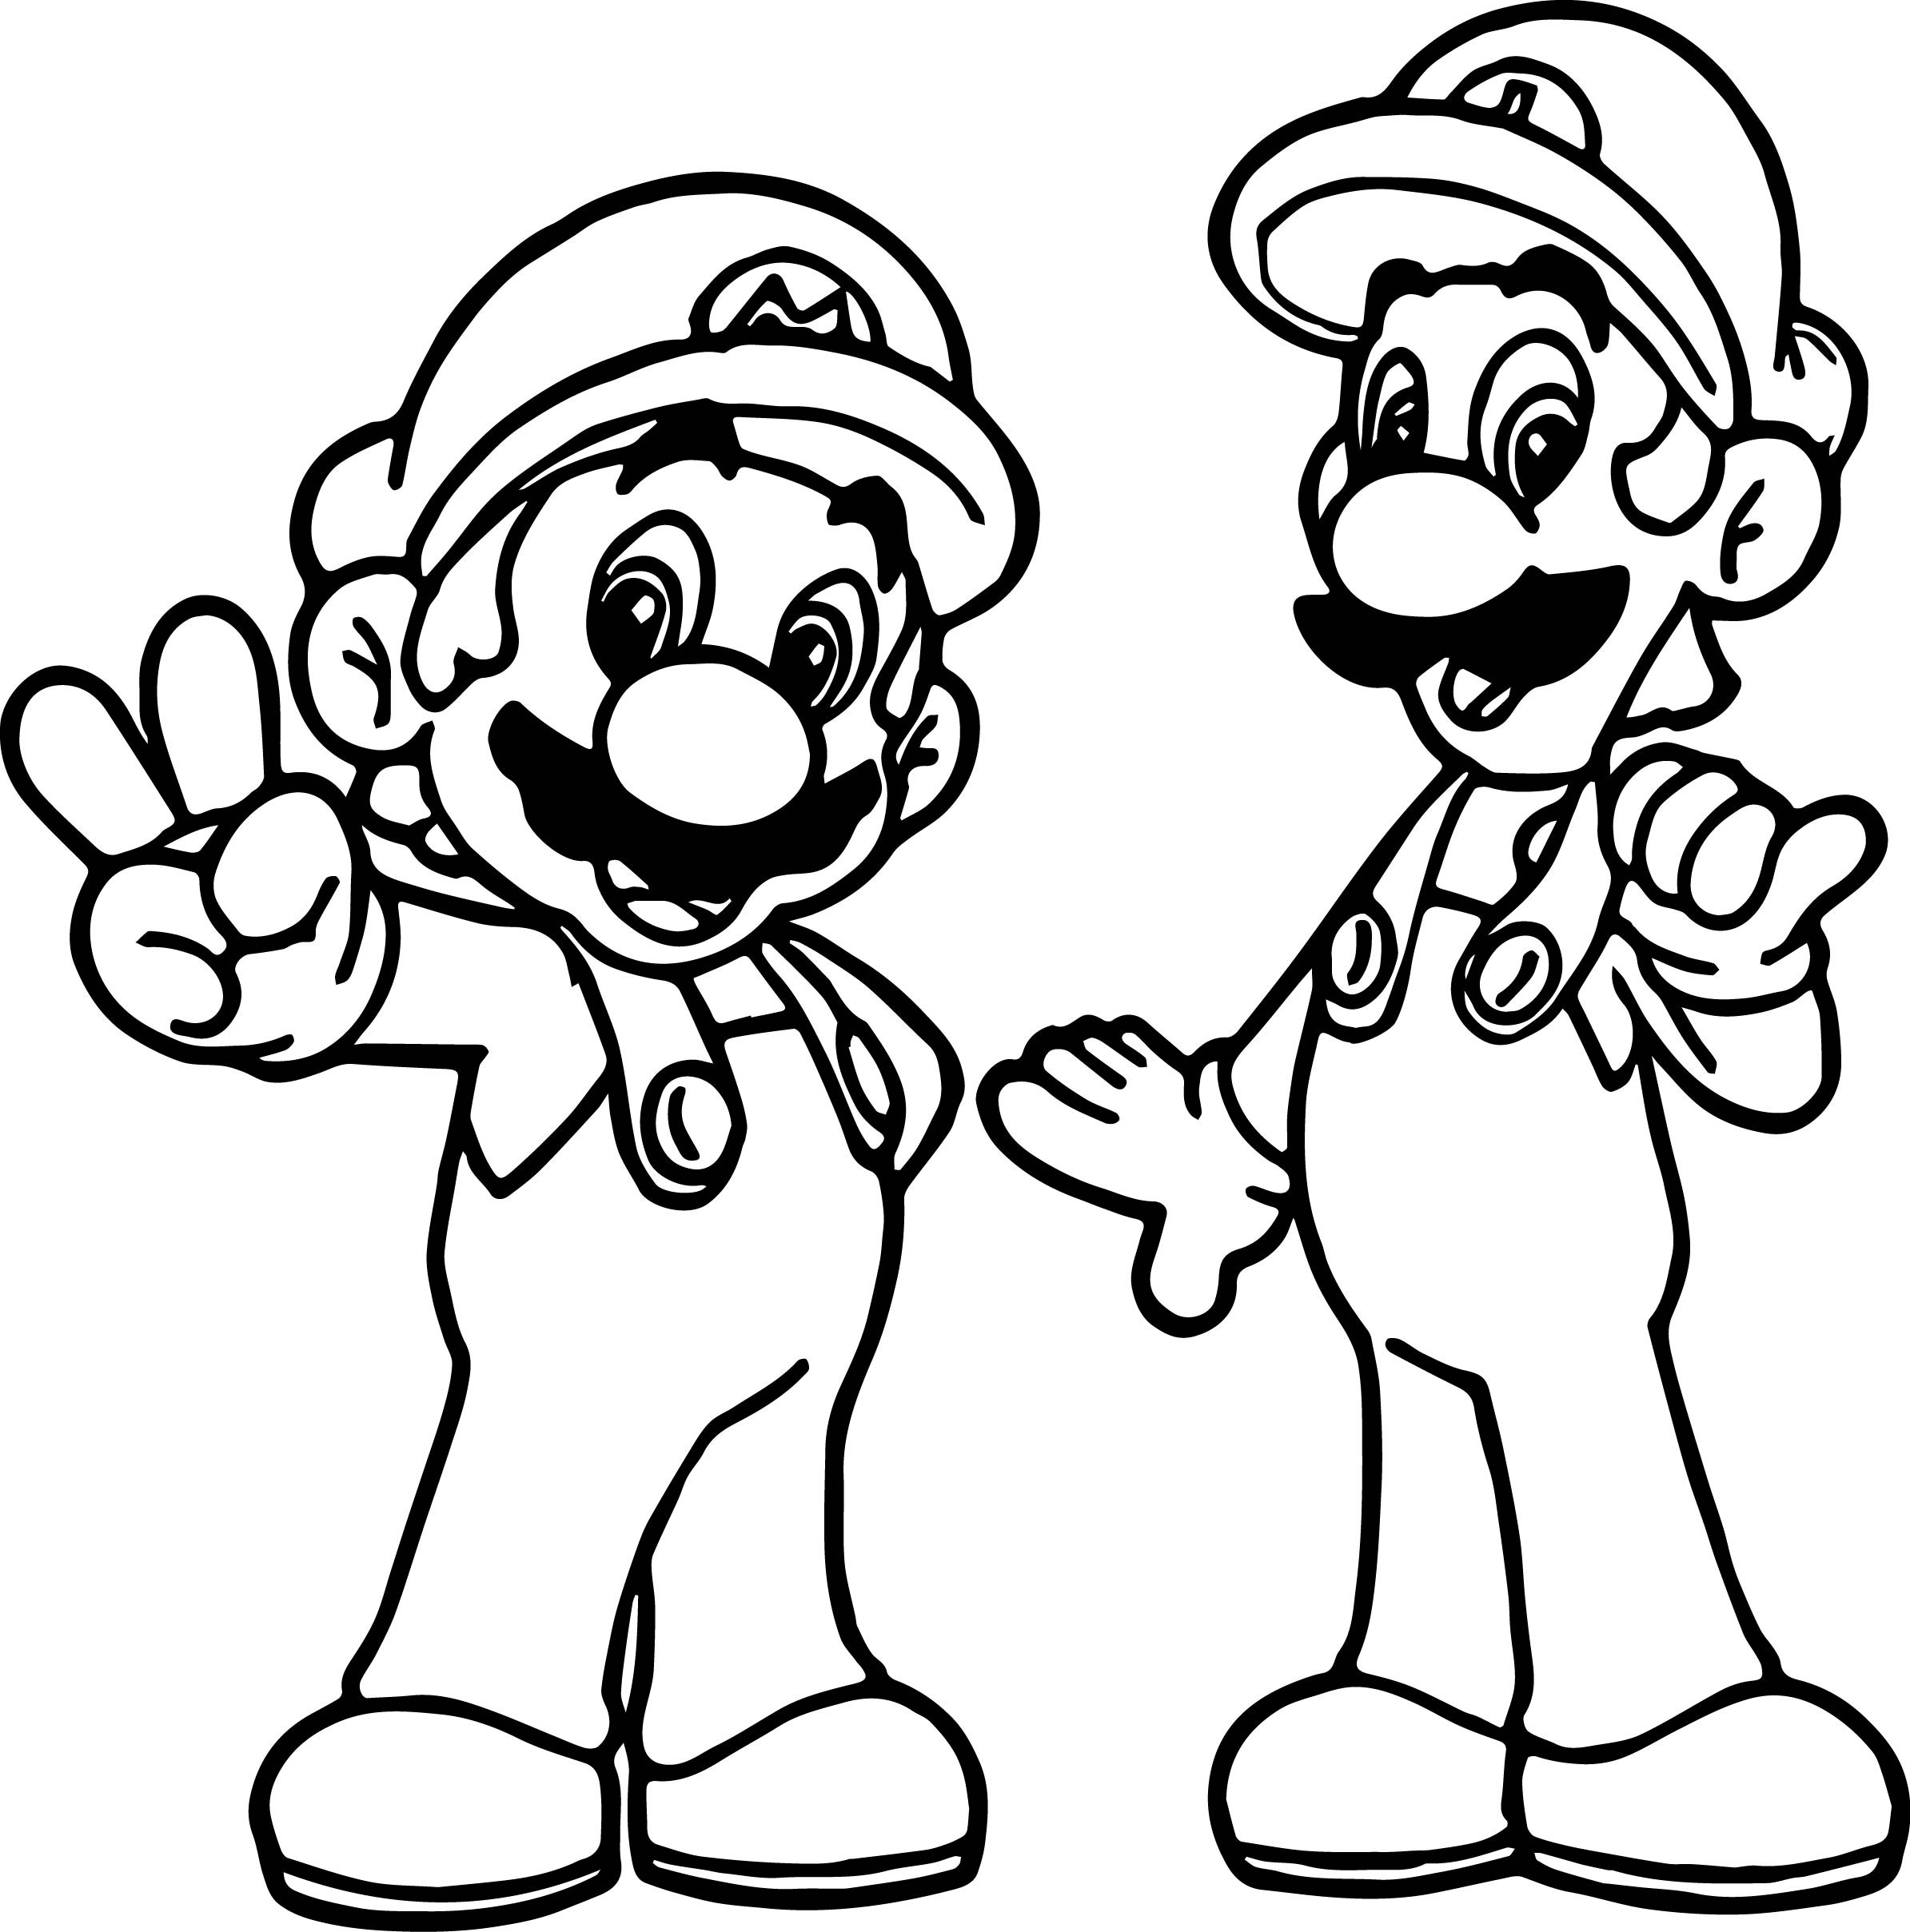 Mario and Luigi Coloring Pages Collection Of Toad Mario Drawing at Getdrawings Gallery